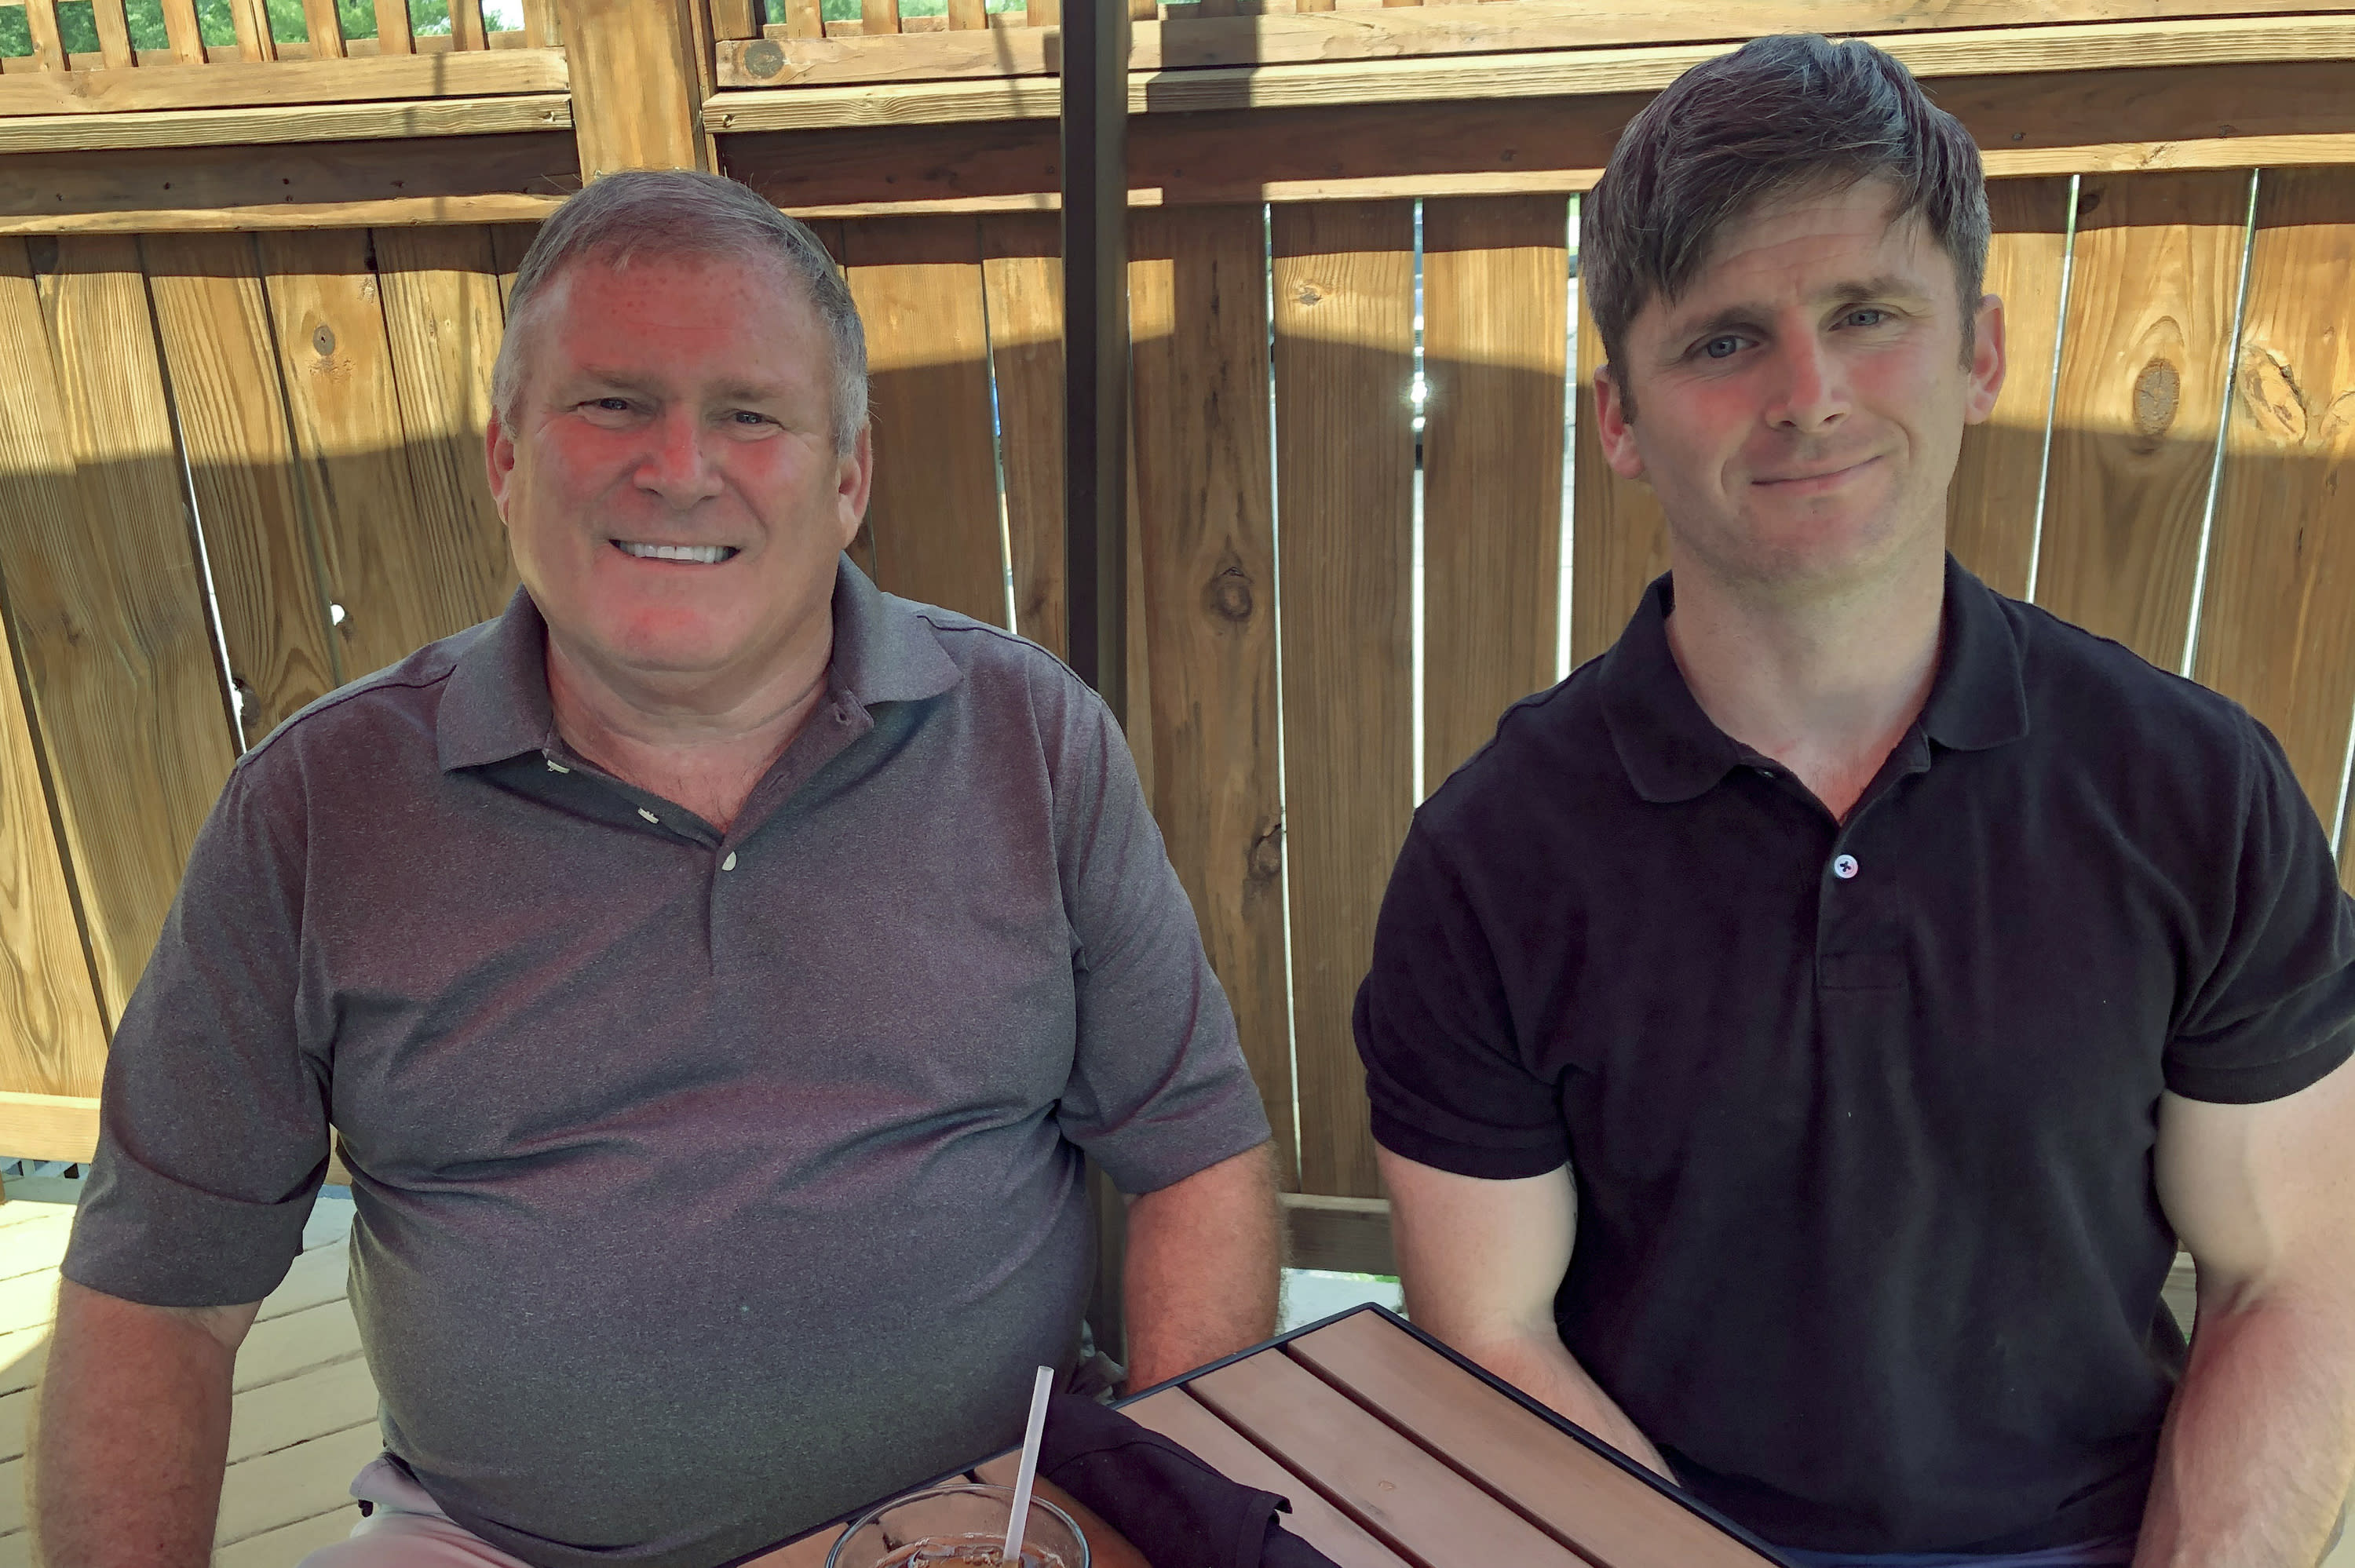 This photo from June 26, 2020 shows Buck Newsome, left, a Baby Boomer, and his son, Chris Newsome, of the Millennial generation, as they pose for a photo while having lunch together in Newtown, Ohio. American's two largest generations can agree on something: the coronavirus pandemic has hit them both hard. For Baby Boomers, named for the post-World War II surge of births, that means those who retired or are nearing retirement age are seeing their retirement accounts in a free fall. Millennials, usually defined as those born between 1981 and 1996, who became adults in this century, are getting socked as they were trying to begin careers or moving into peak earning years after many walked off college campuses into the Great Recession. (AP Photo/Dan Sewell)